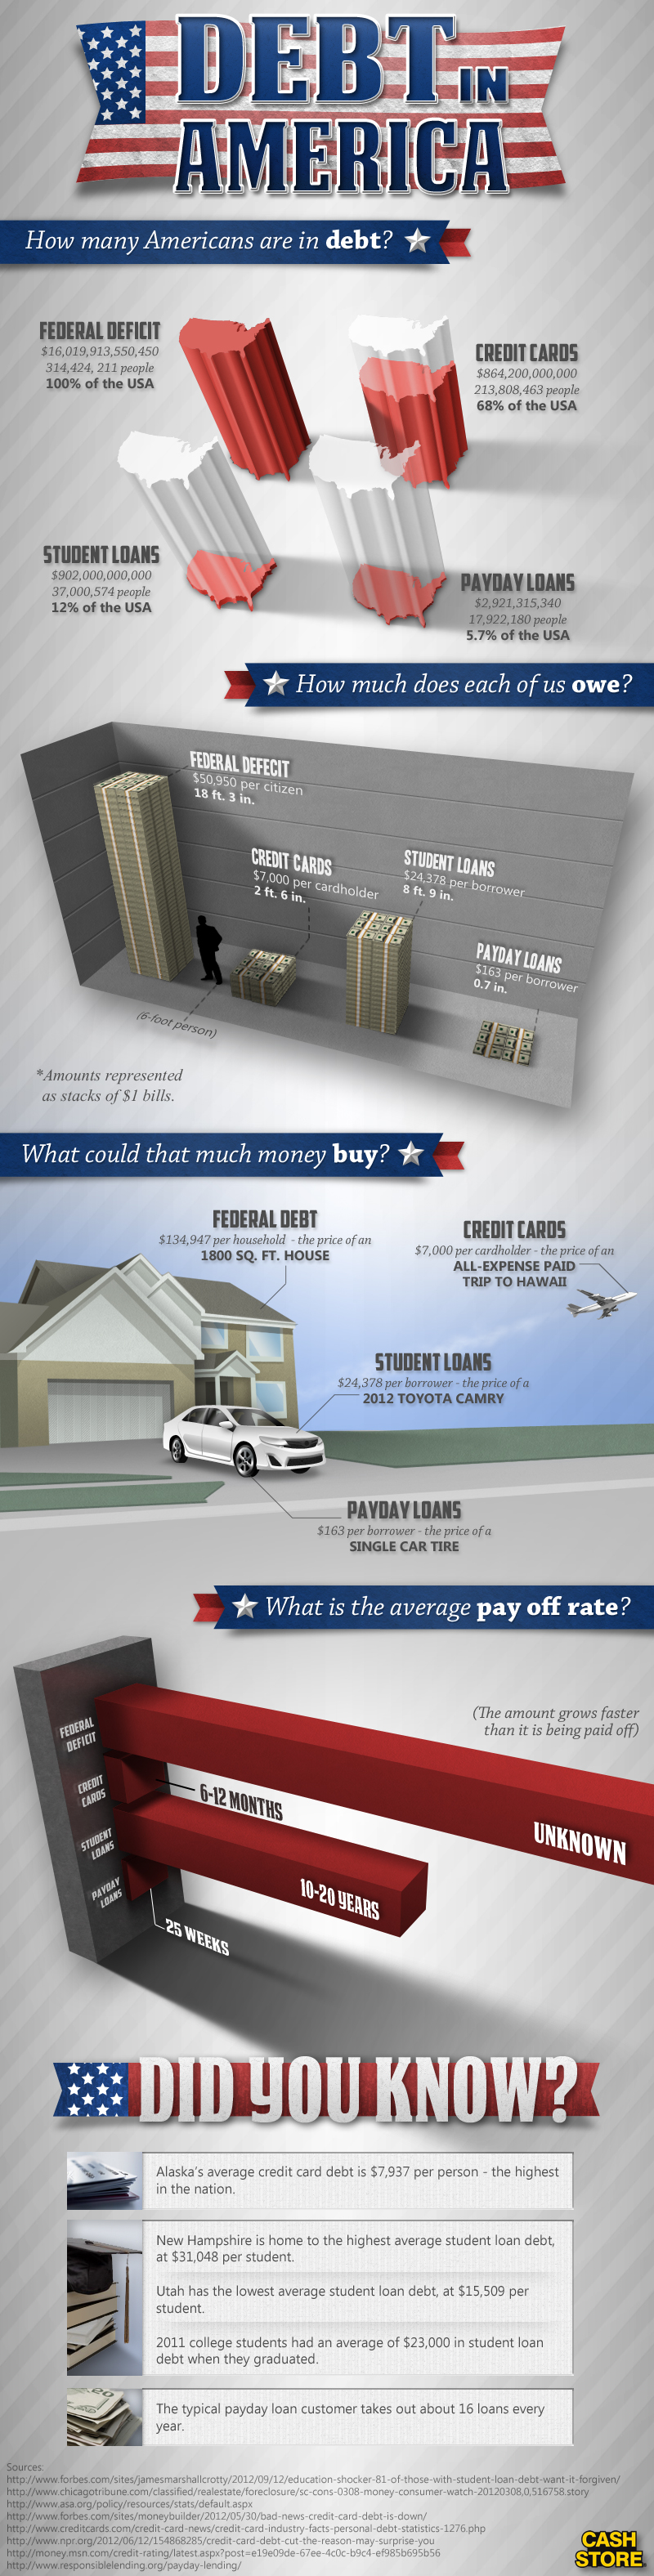 This infographic covers the federal, credit card and